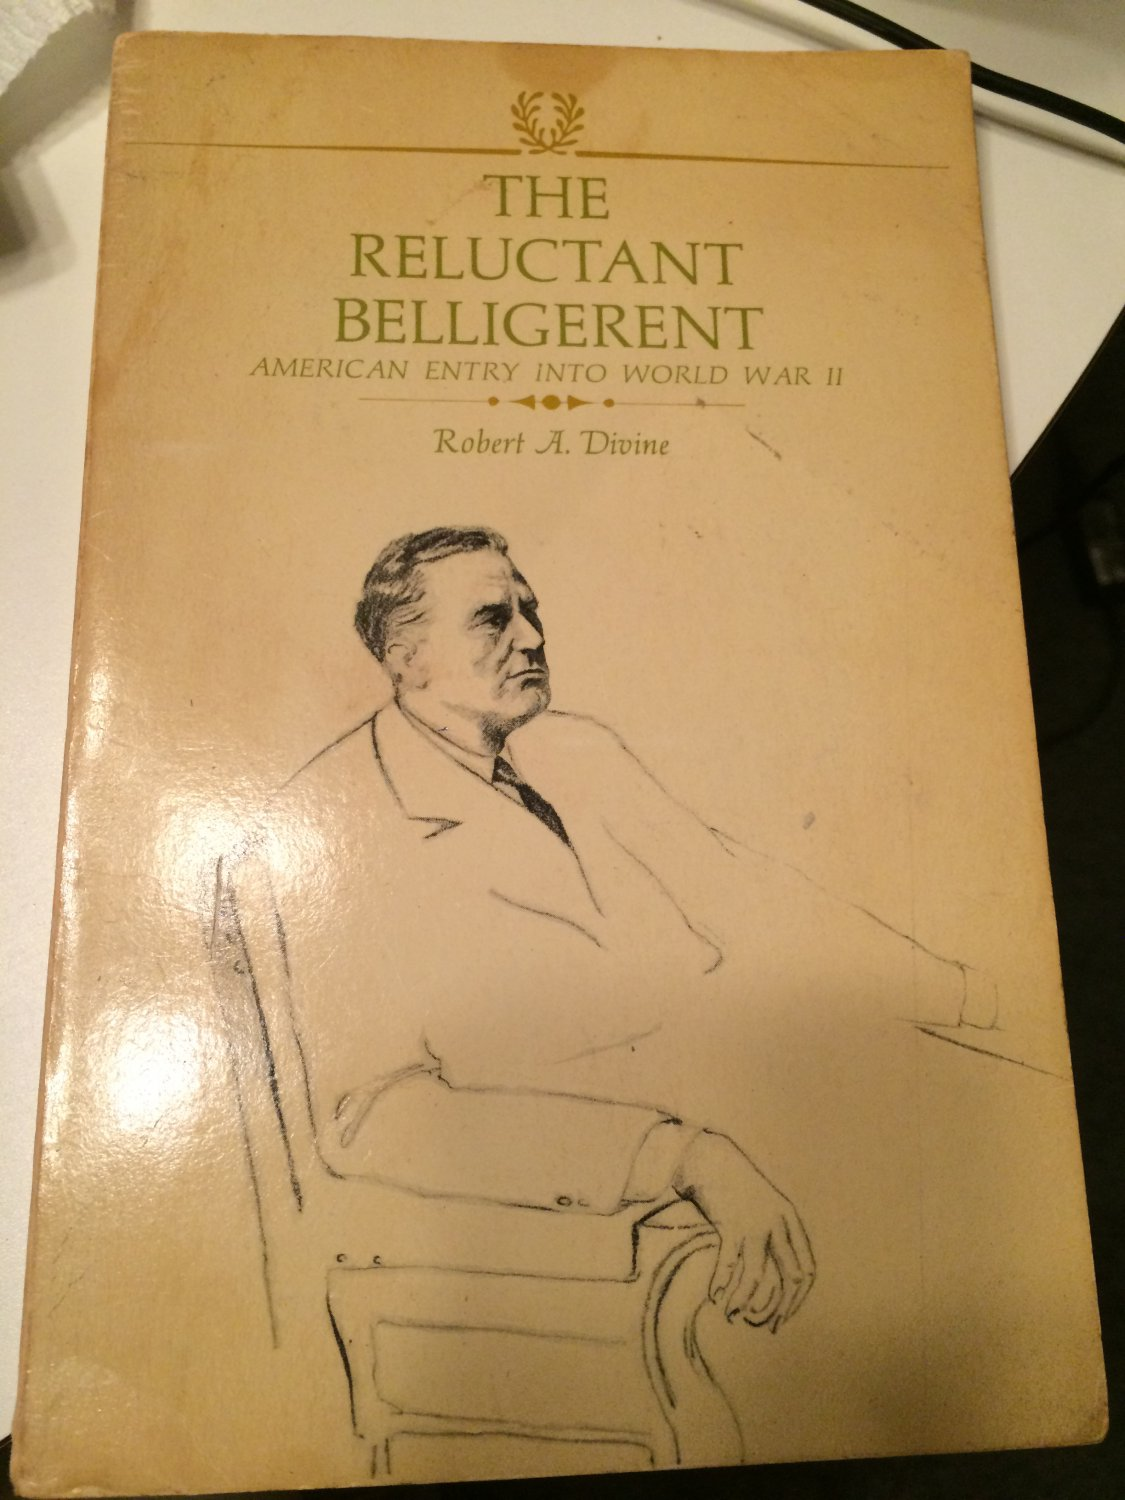 The Reluctant Belligerent: American Entry Into World War II Paperback � 1965 by Robert A. Divine